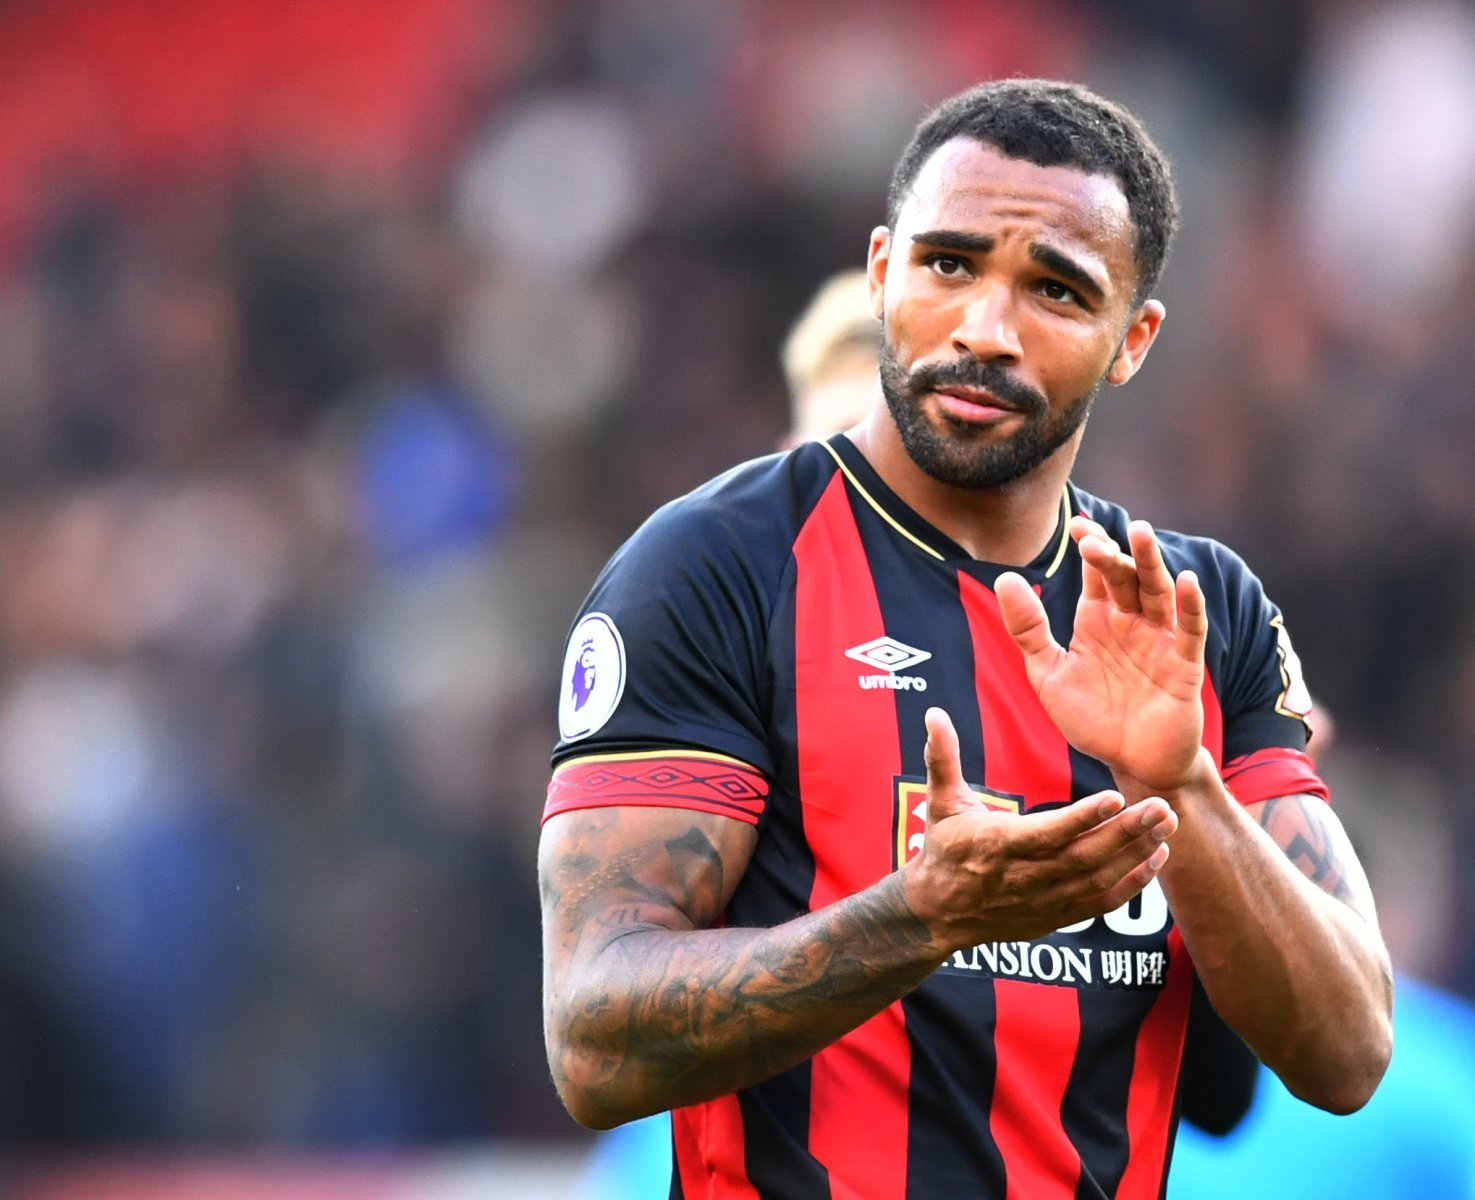 Everton must look at Callum Wilson as a forward option